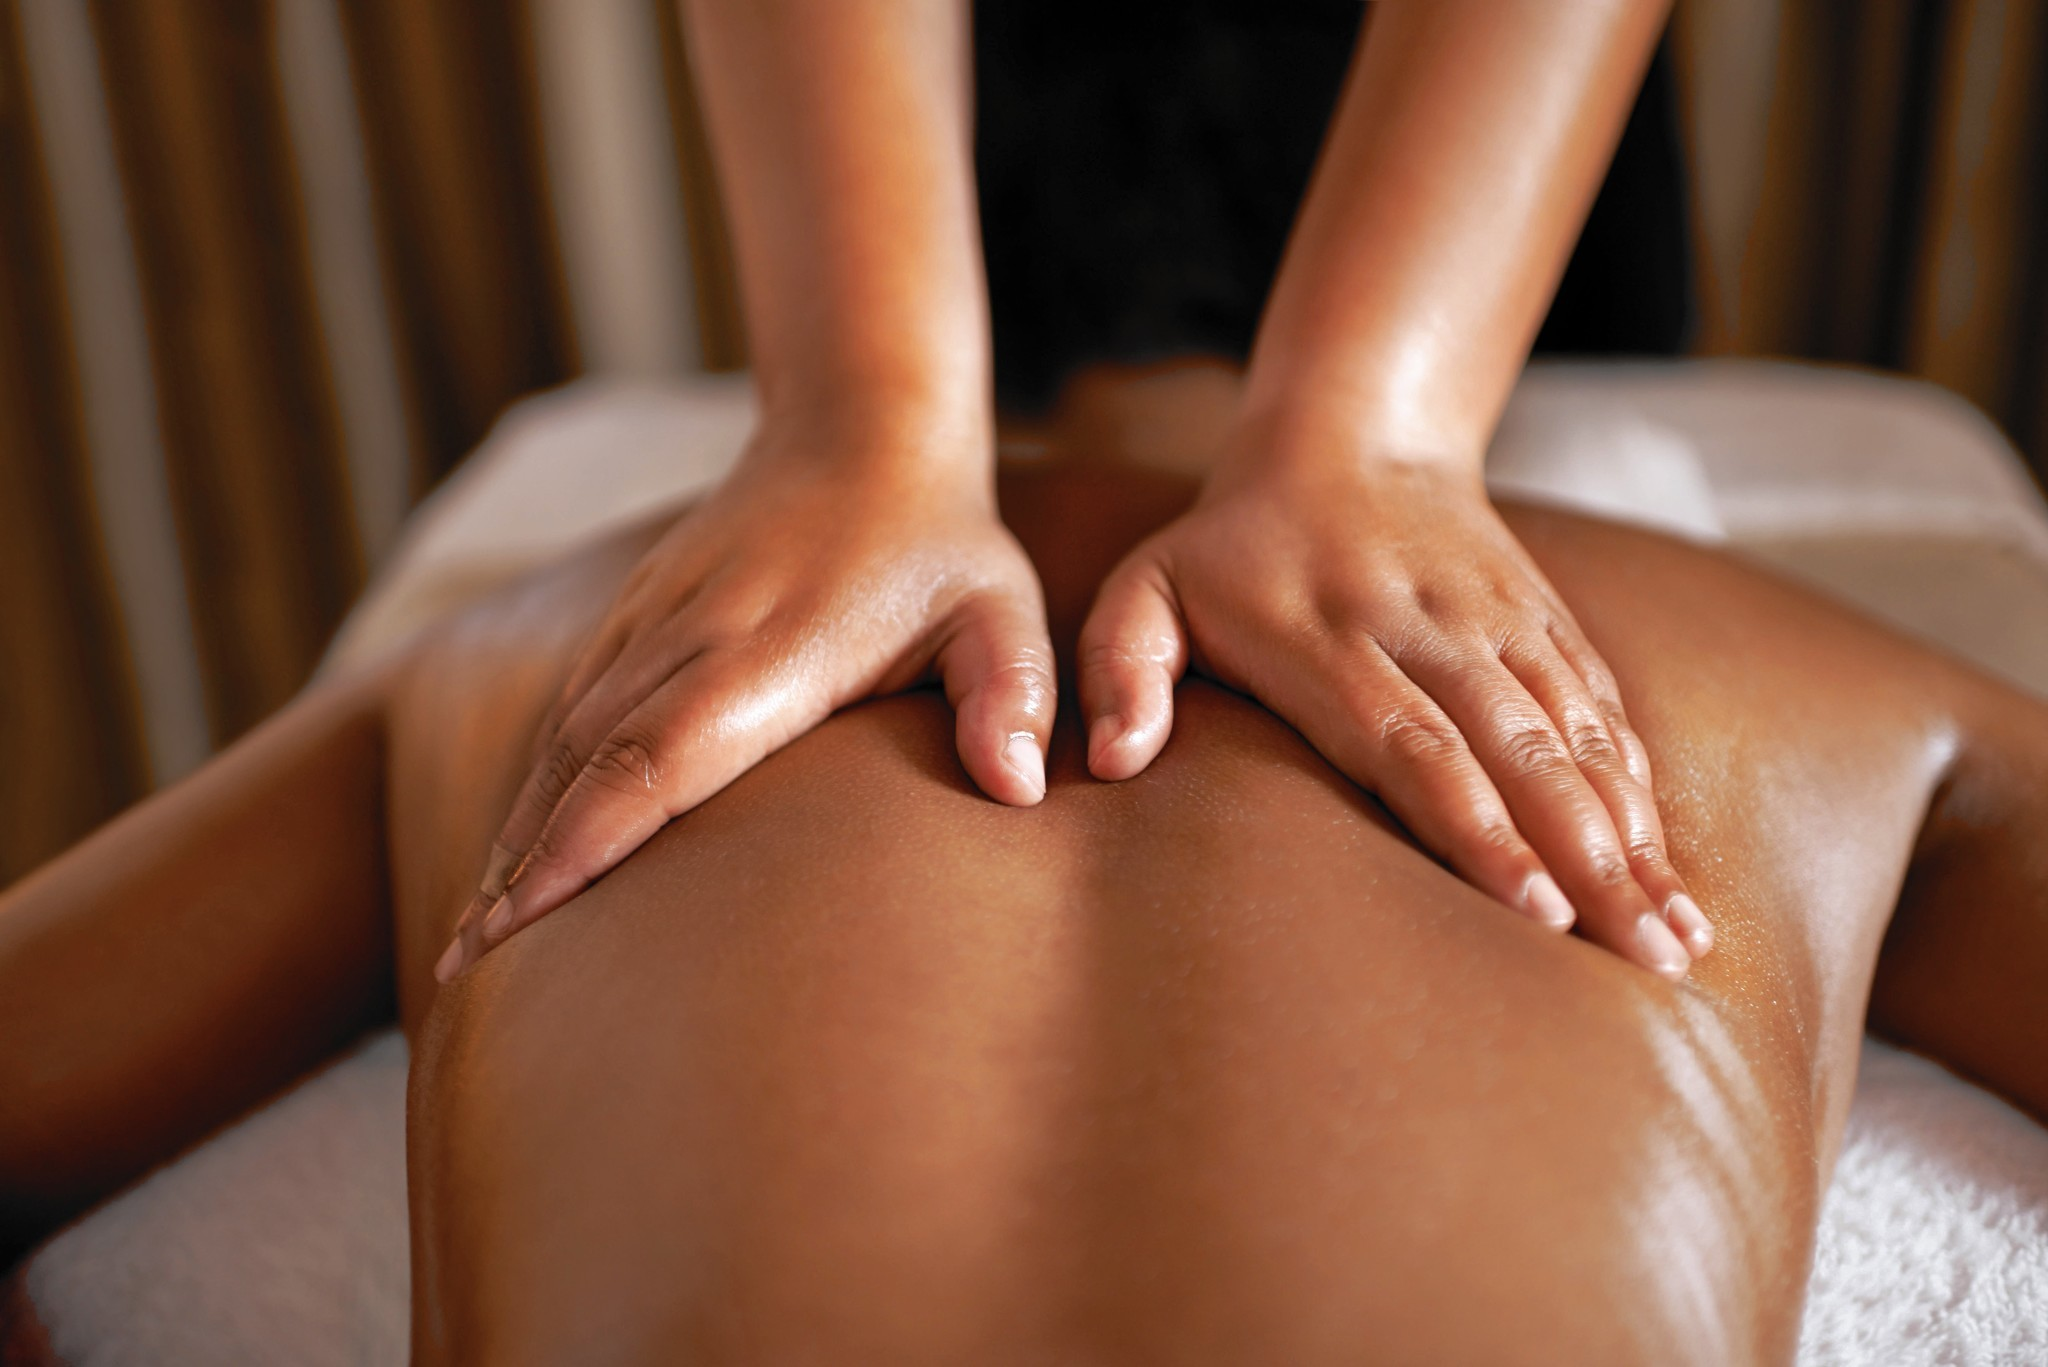 Massage Discounts Kona Pamper Yourself With Luxurious Spa Services at Kona